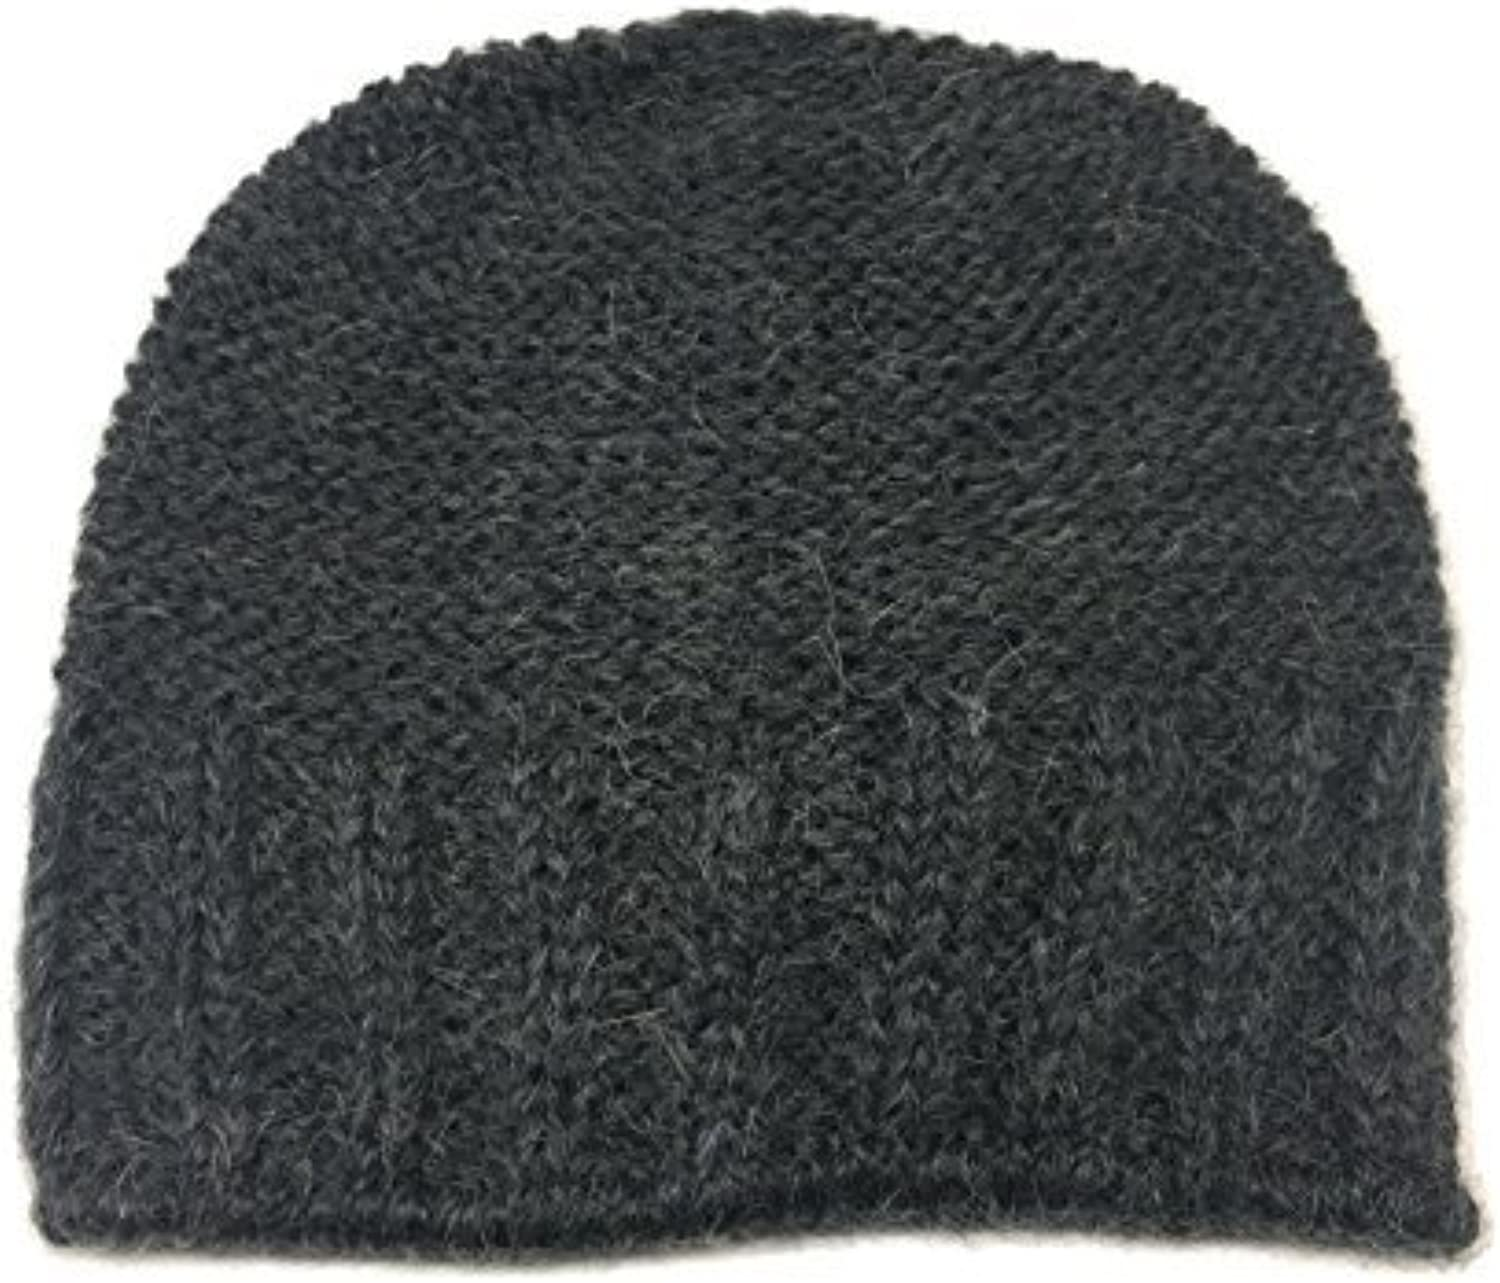 GAZ Egrave L Cappello Donna Mohair Made Antracite Made Mohair in Parent  ec91f9 291fef48dfd5